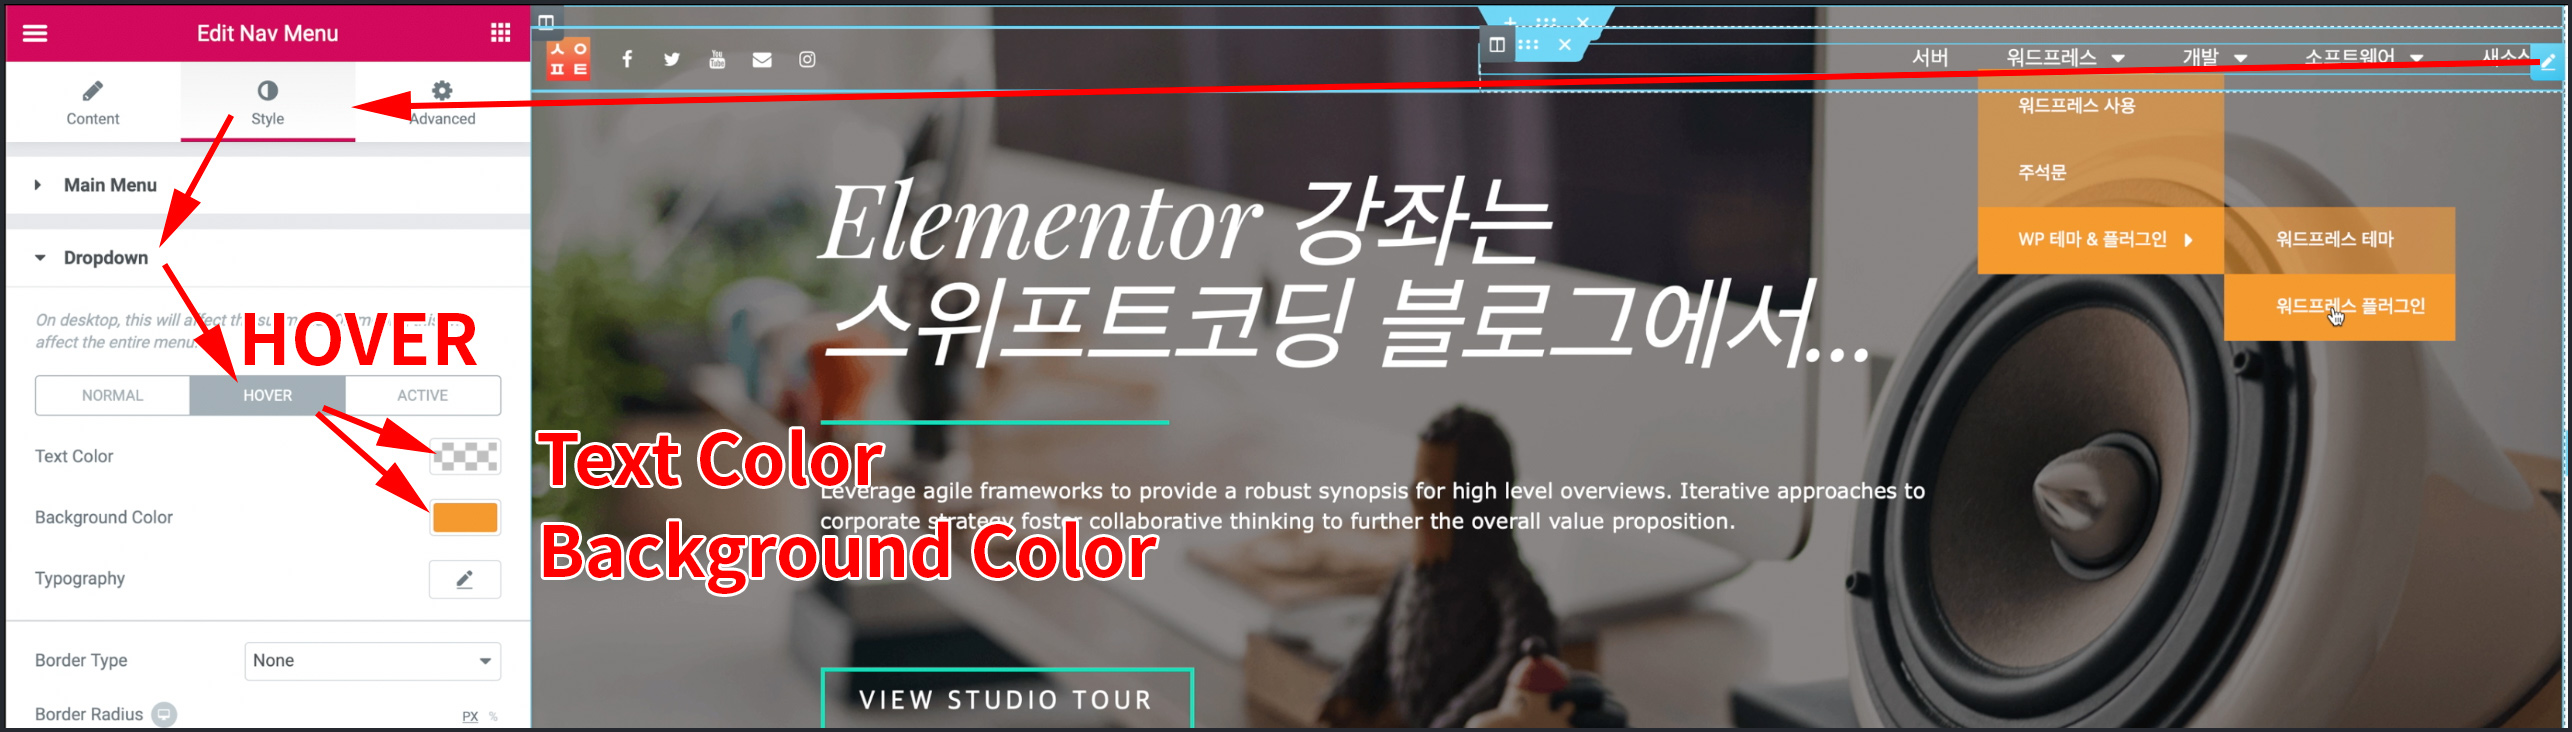 Nav Menu 선택, Style, Dropdown의 Hover 상태의 text color와 background color 지정